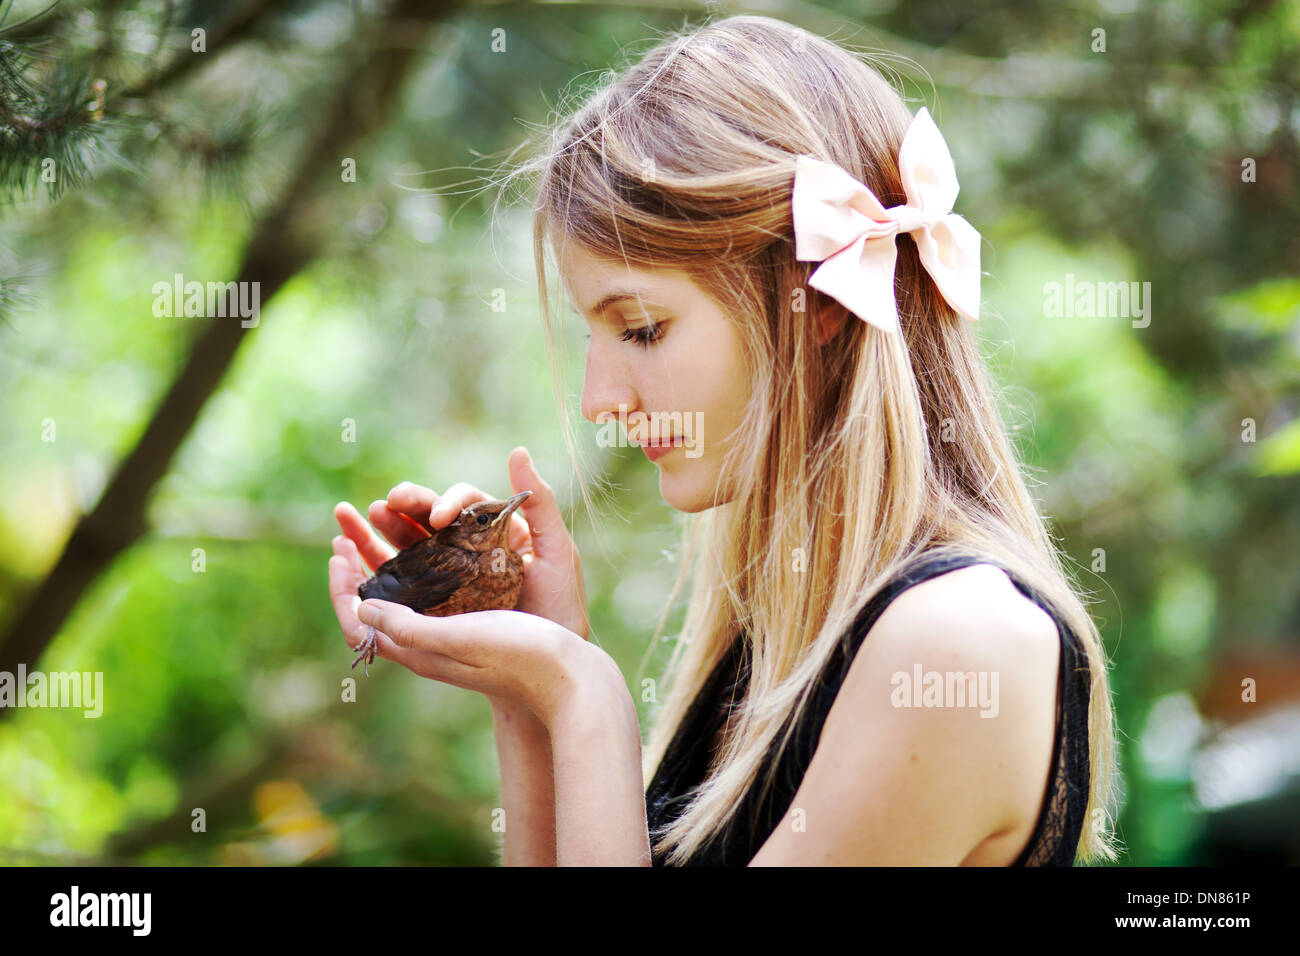 Girl with young Bird in the Hand - Stock Image